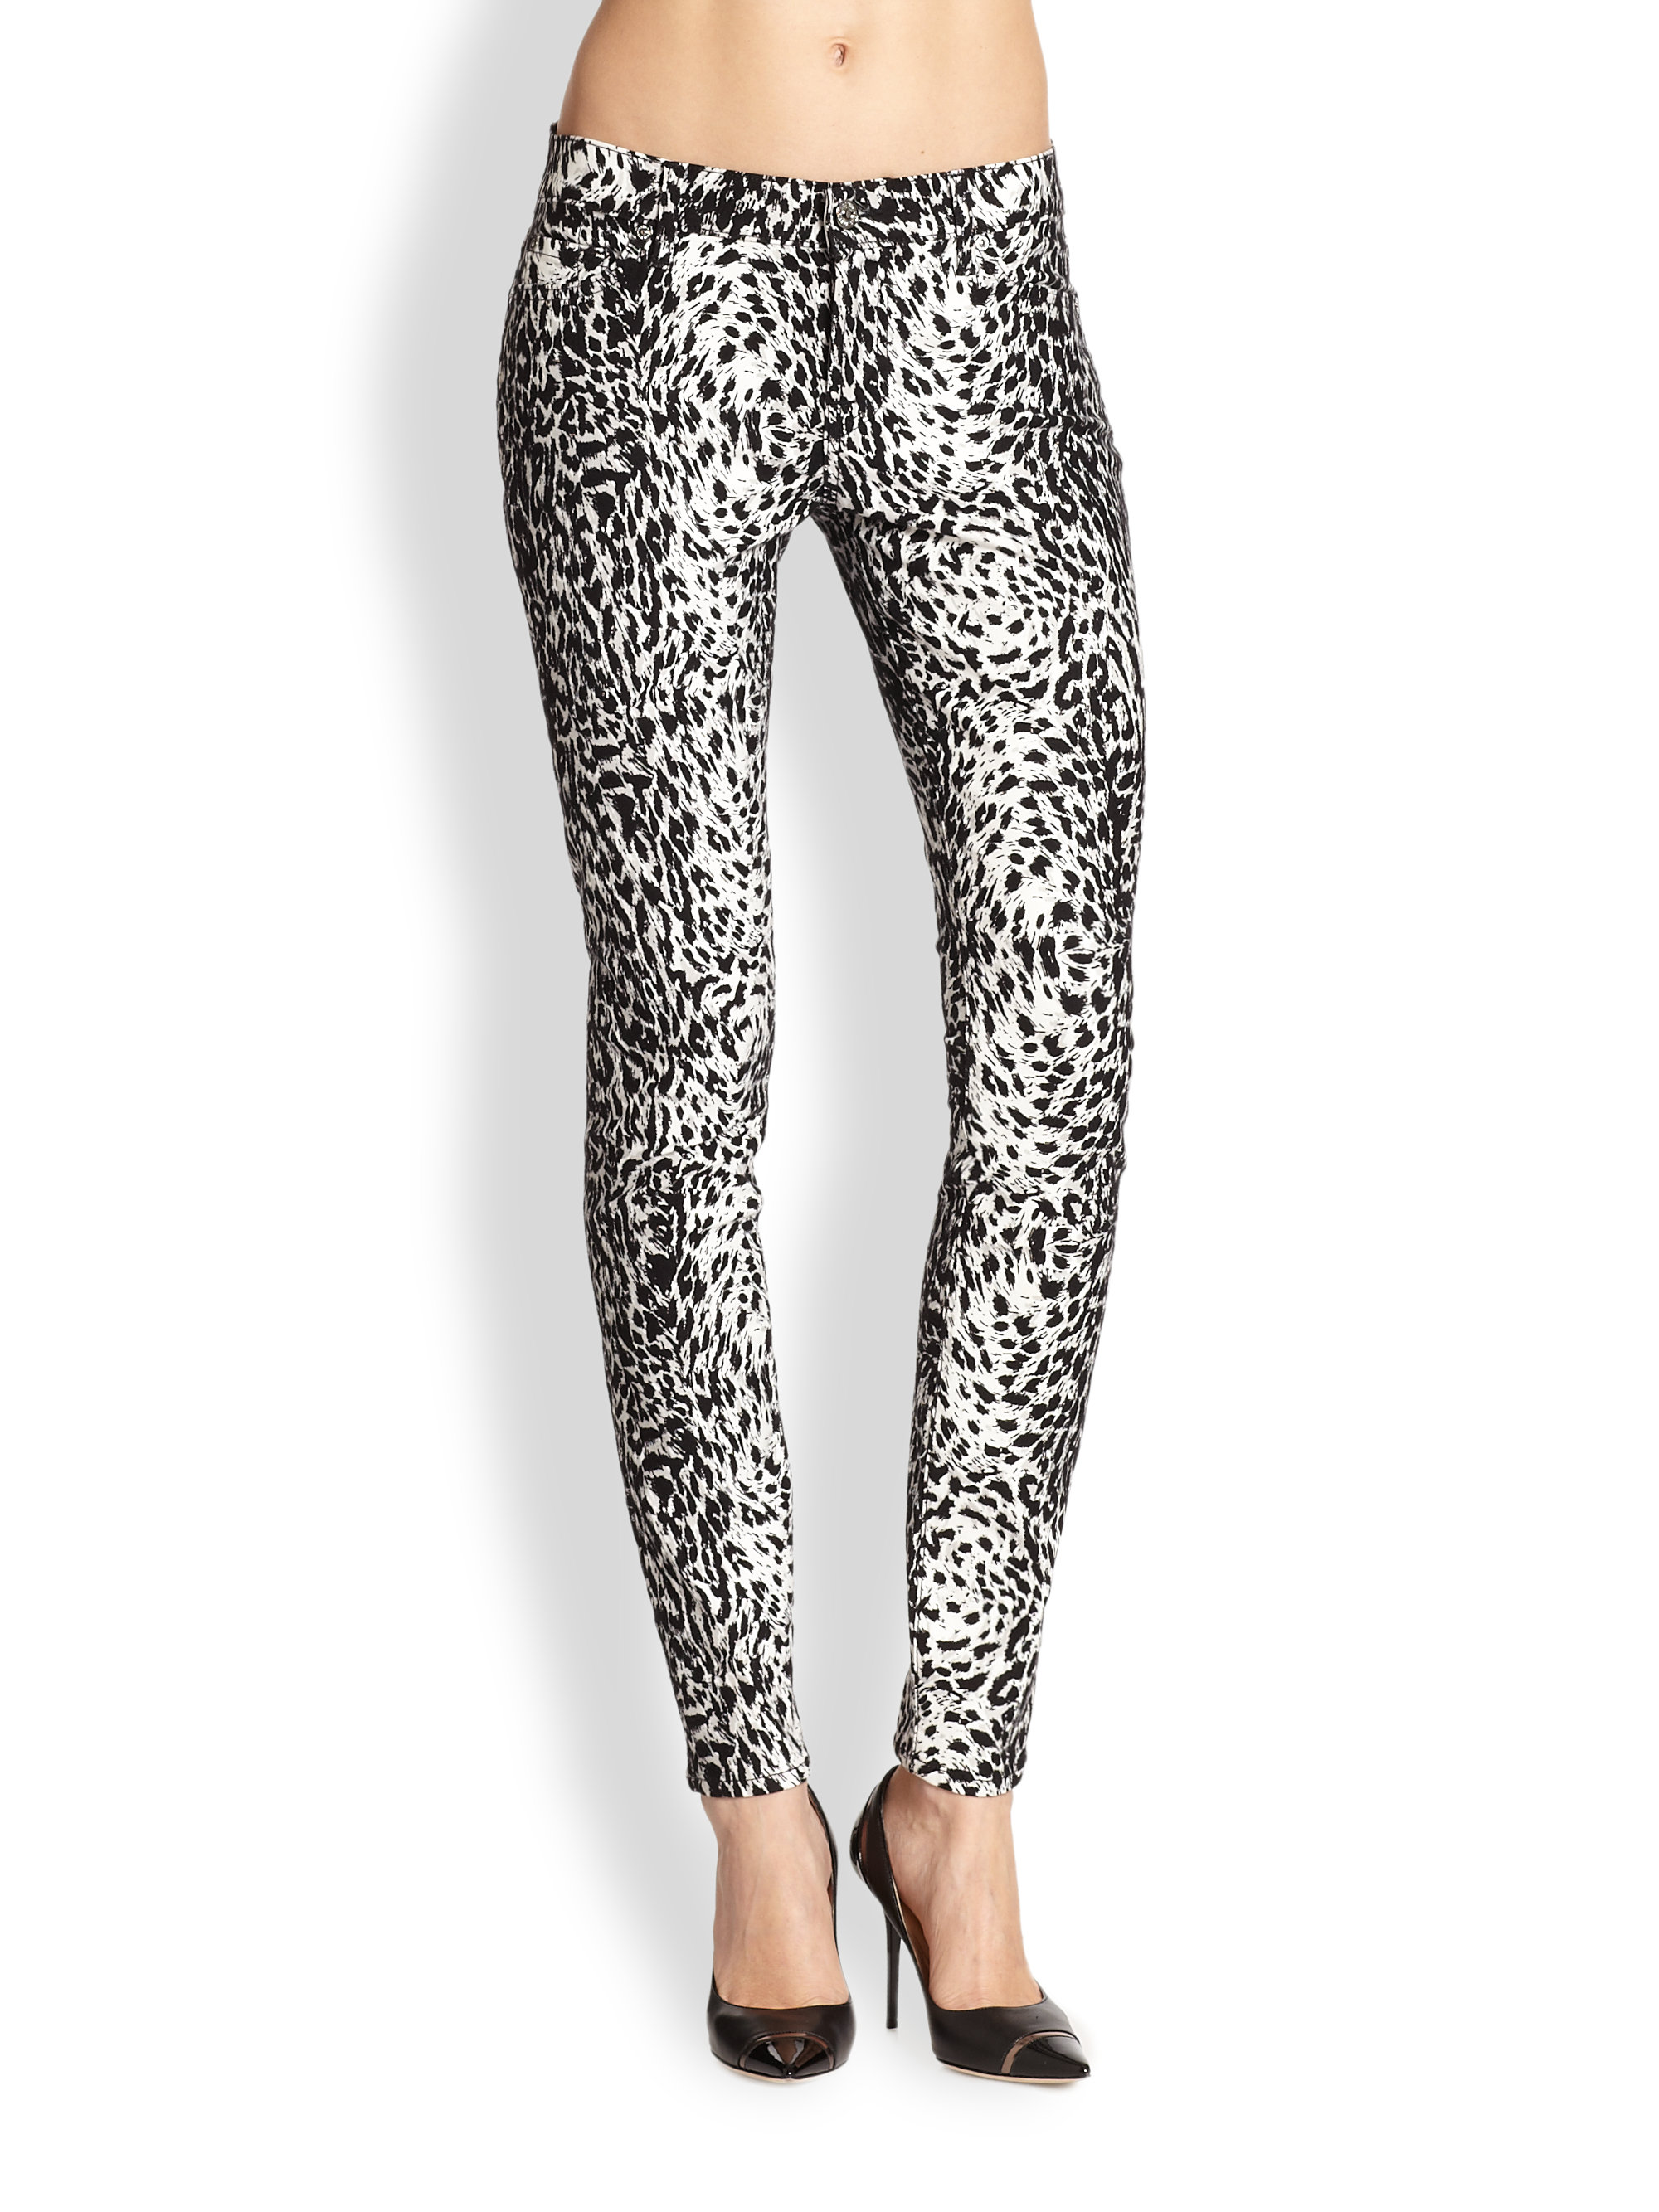 Find great deals on eBay for leopard denim jeans. Shop with confidence.